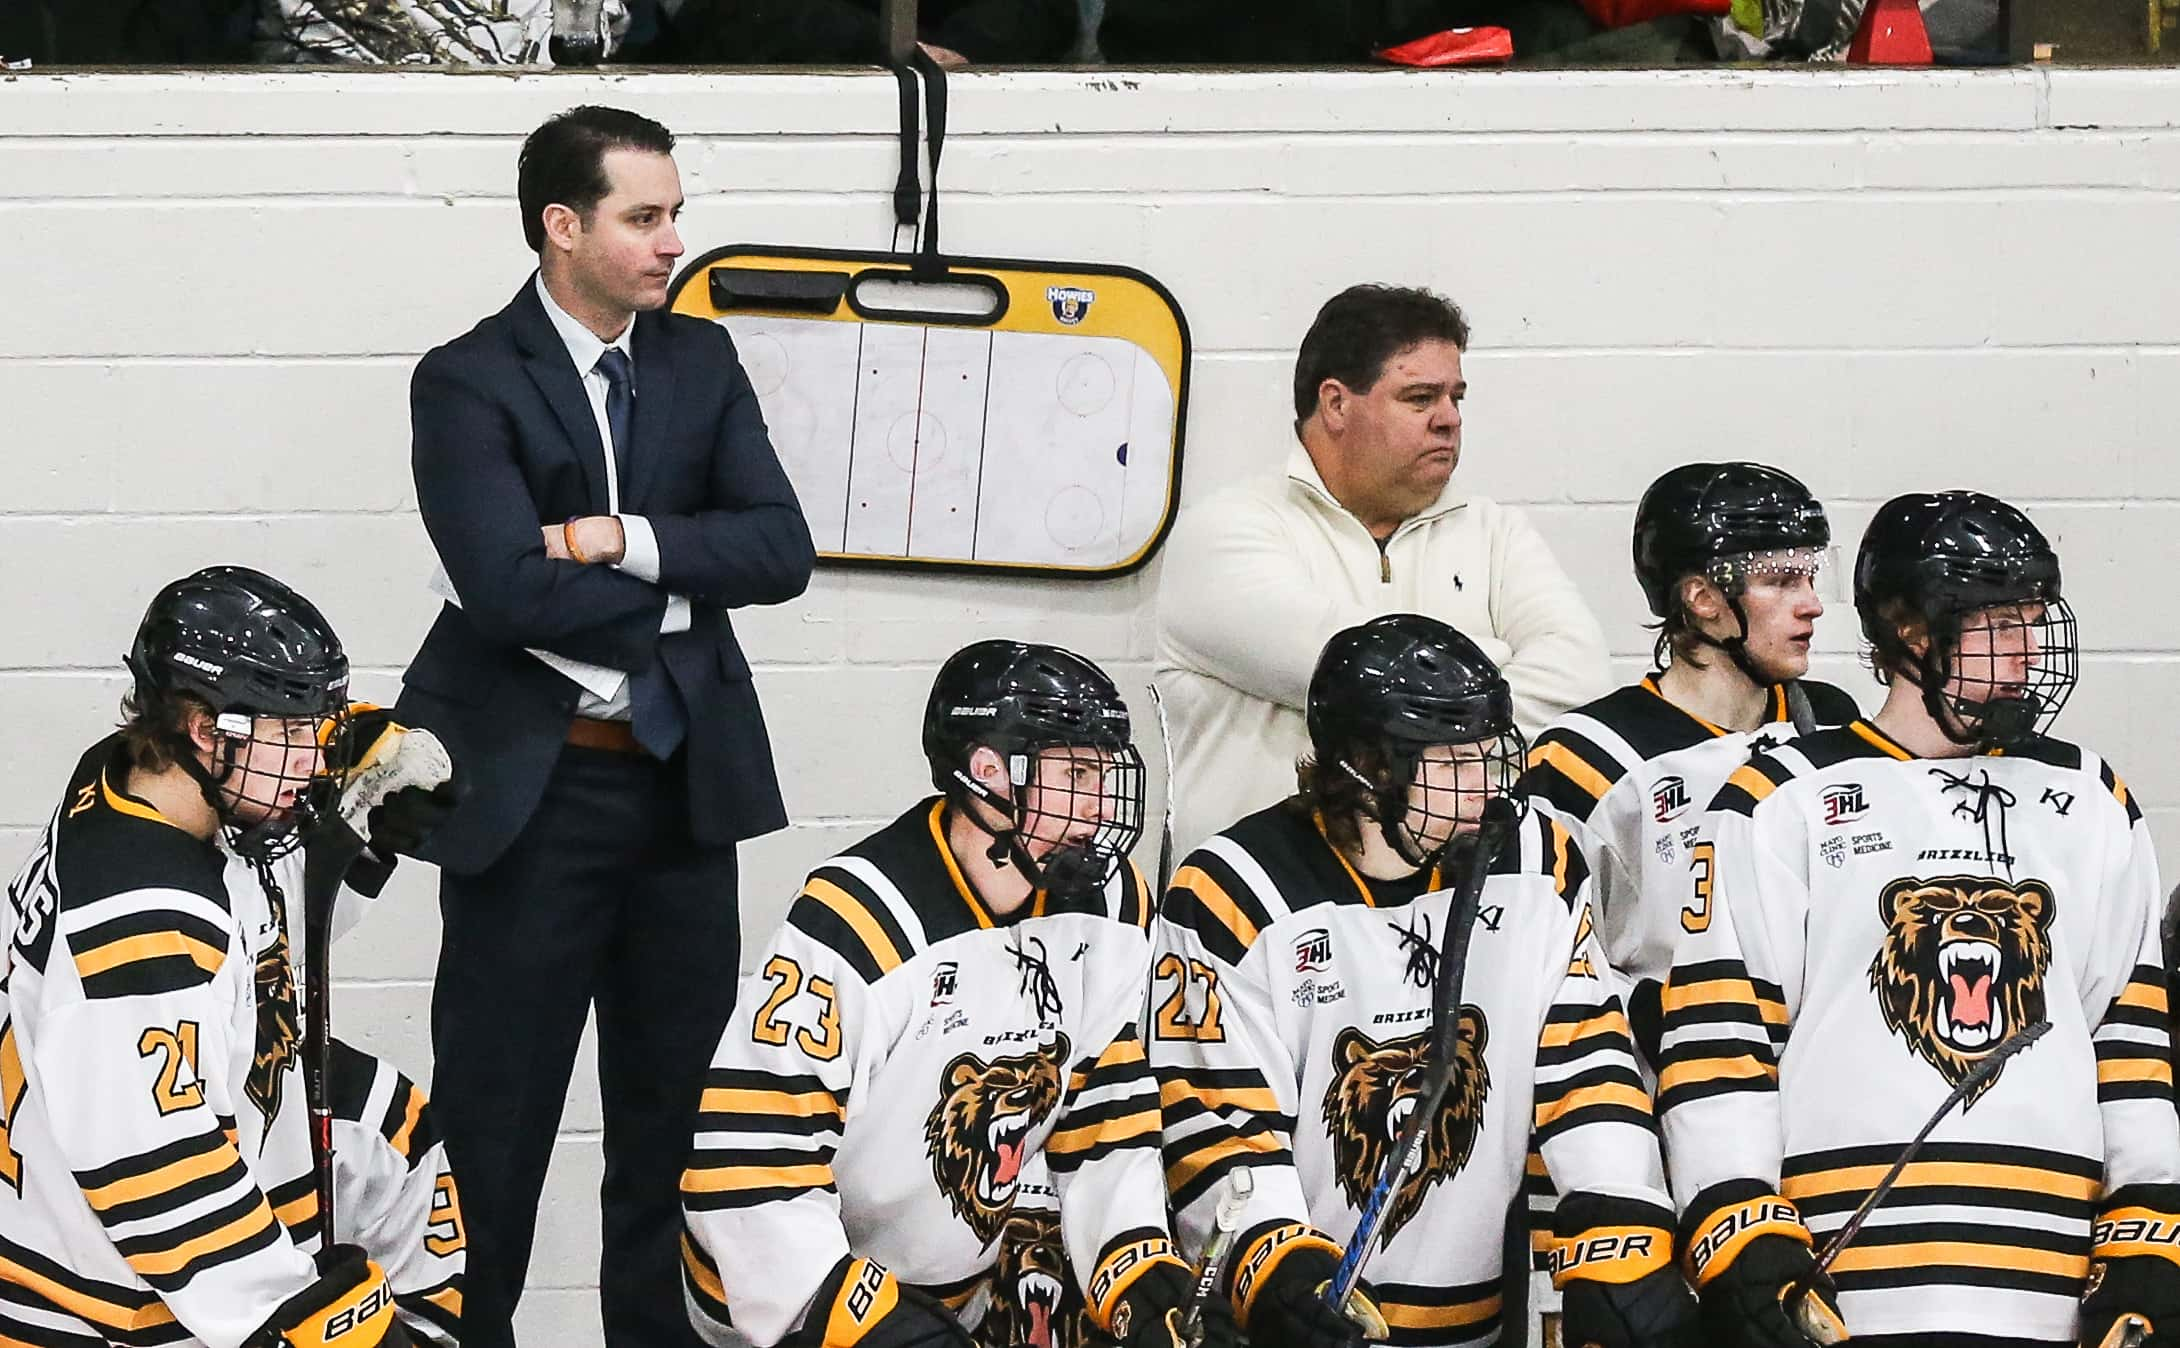 Rochester Grizzlies coach leaving to become NAHL assistant